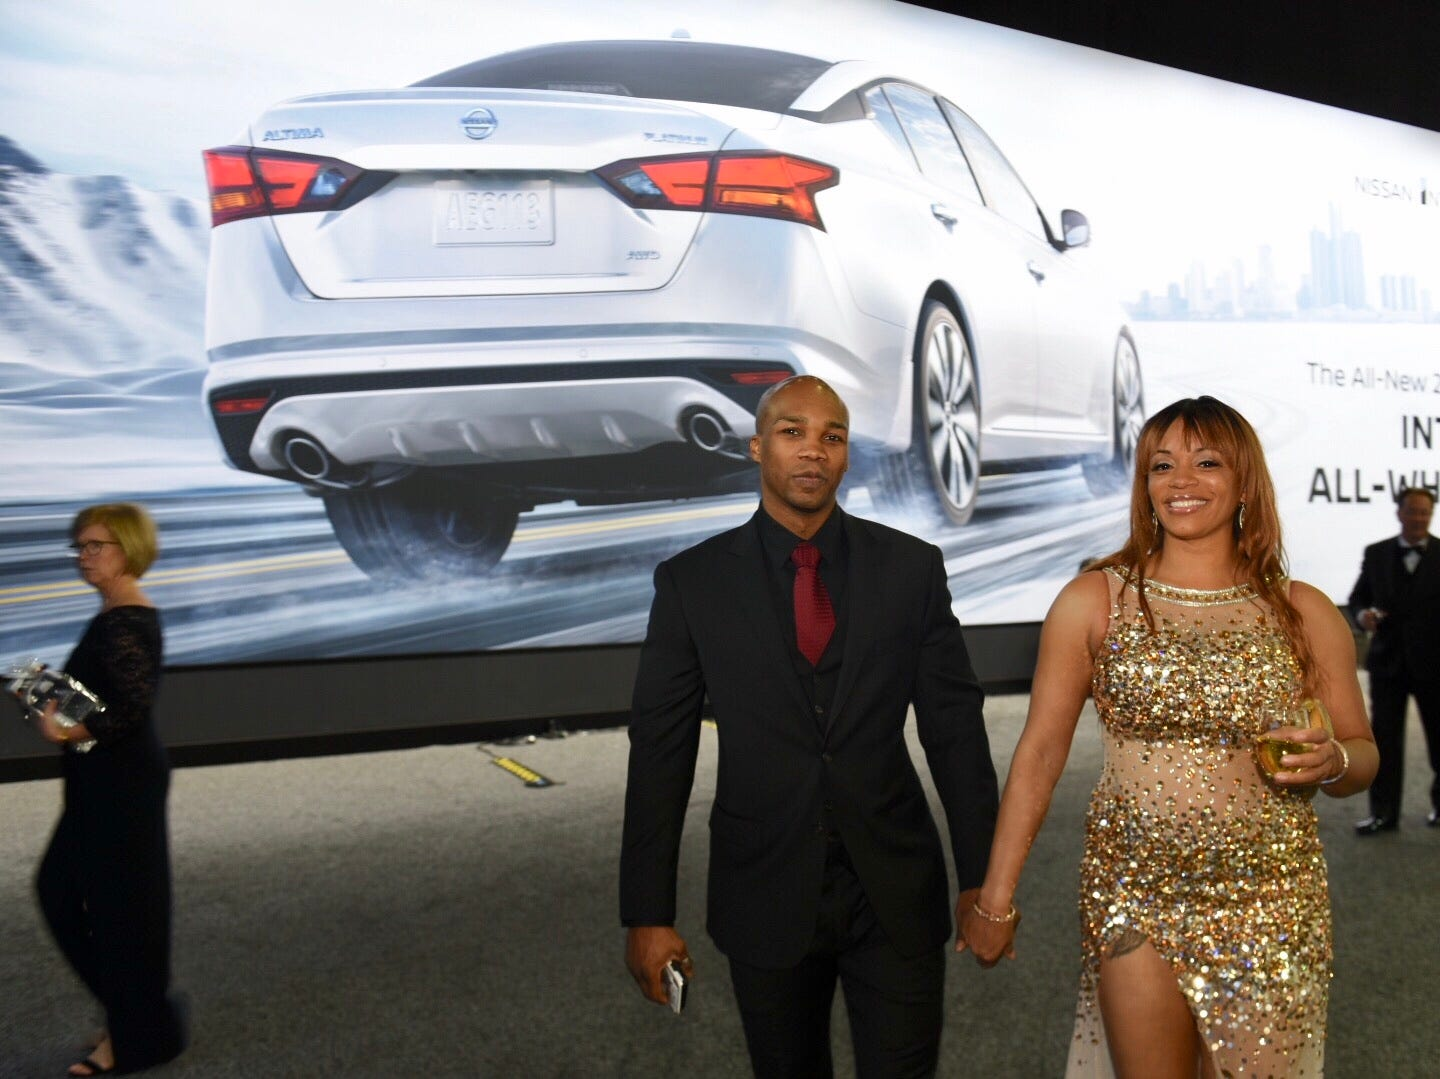 Mike Ejia and Shay Horchata of Las Vegas walk past a billboard-size image of the 2019 Nissan Altima at the Charity Preview.